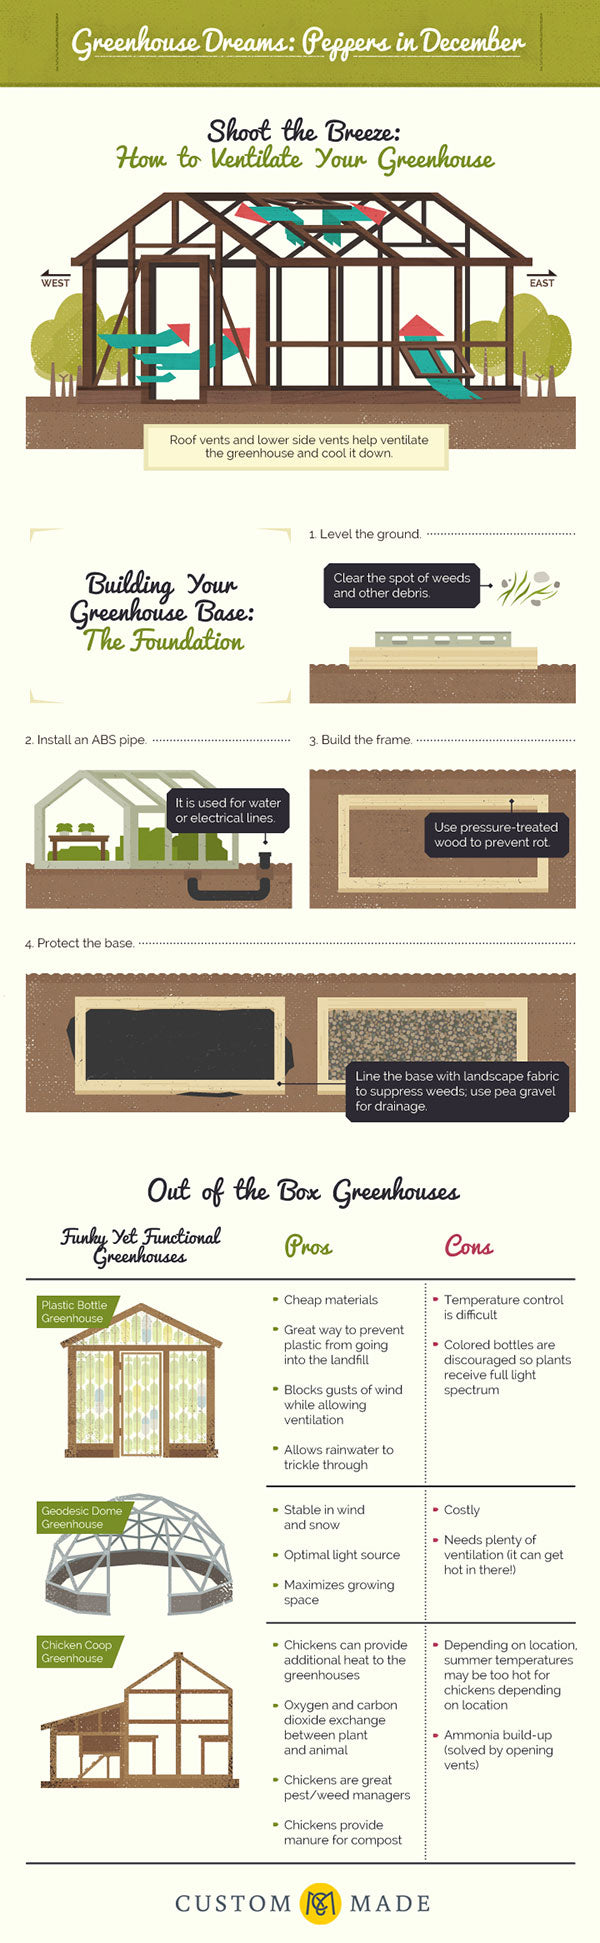 diy-greenhouse-types-pros-and-cons